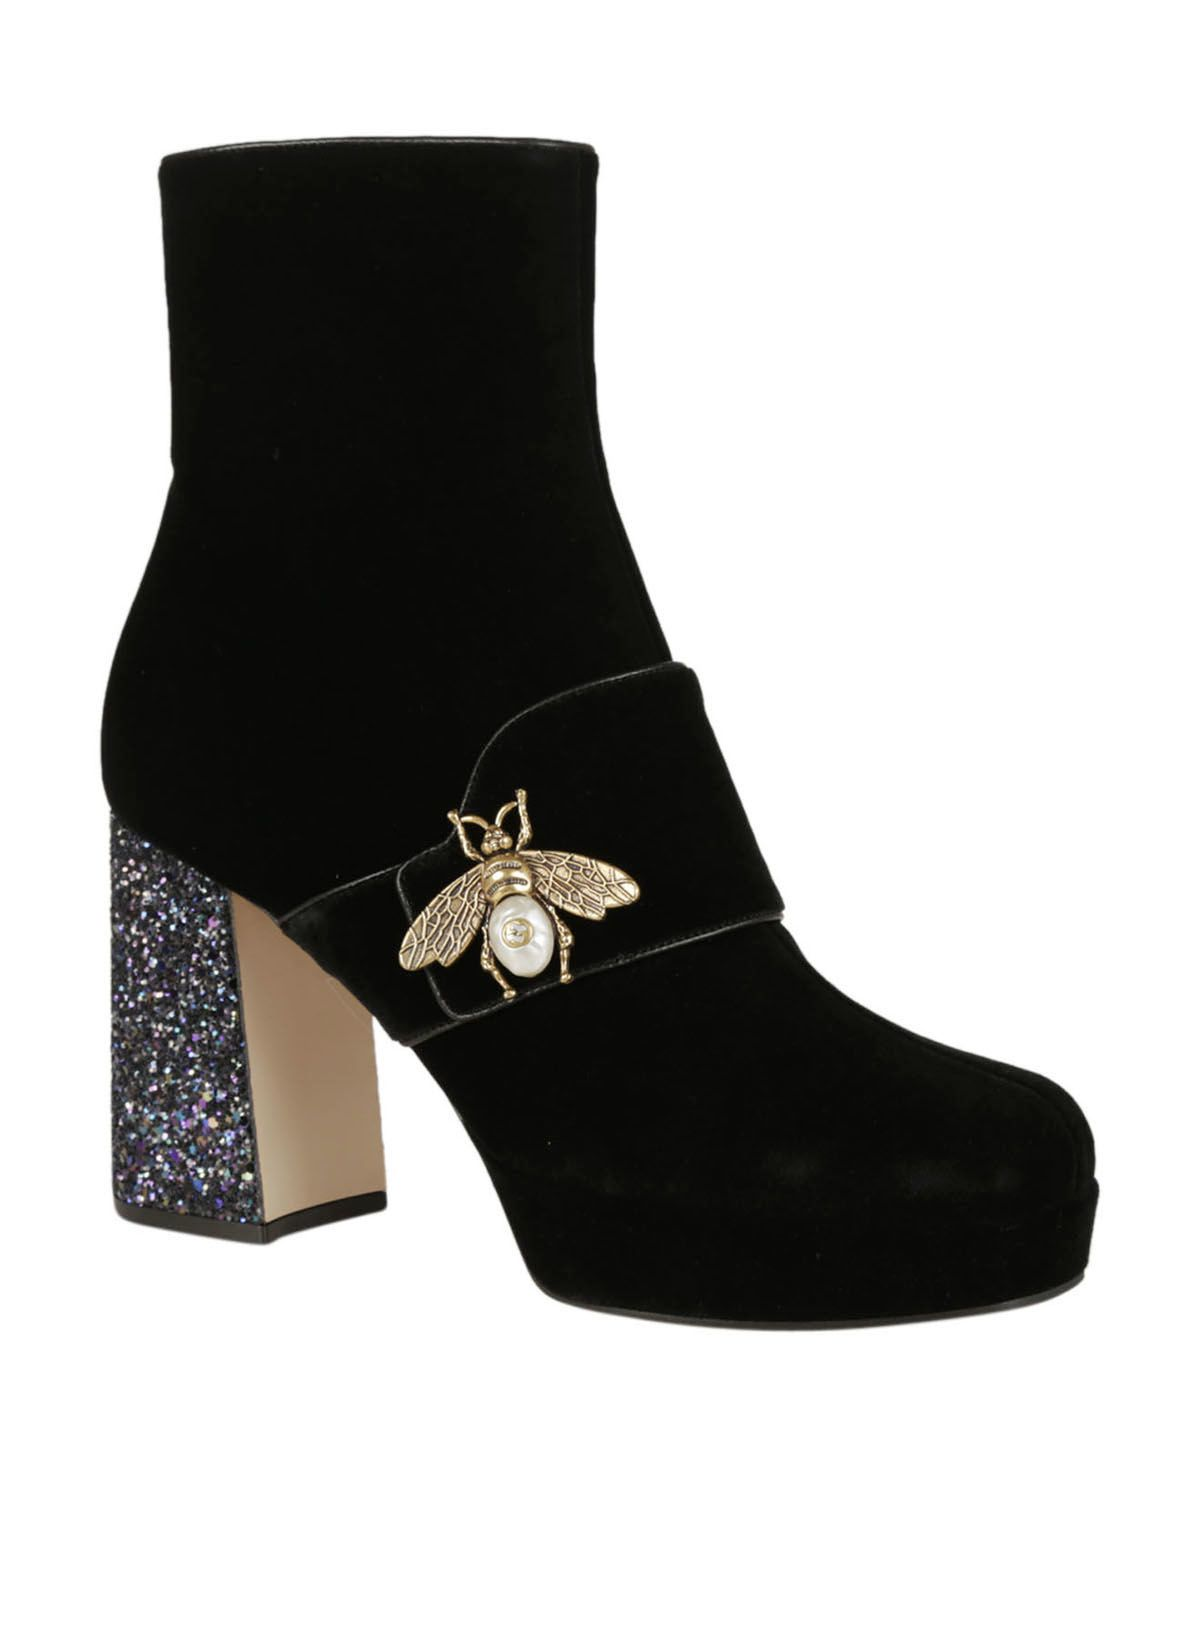 Gucci - Gucci Bee Ankle Boots